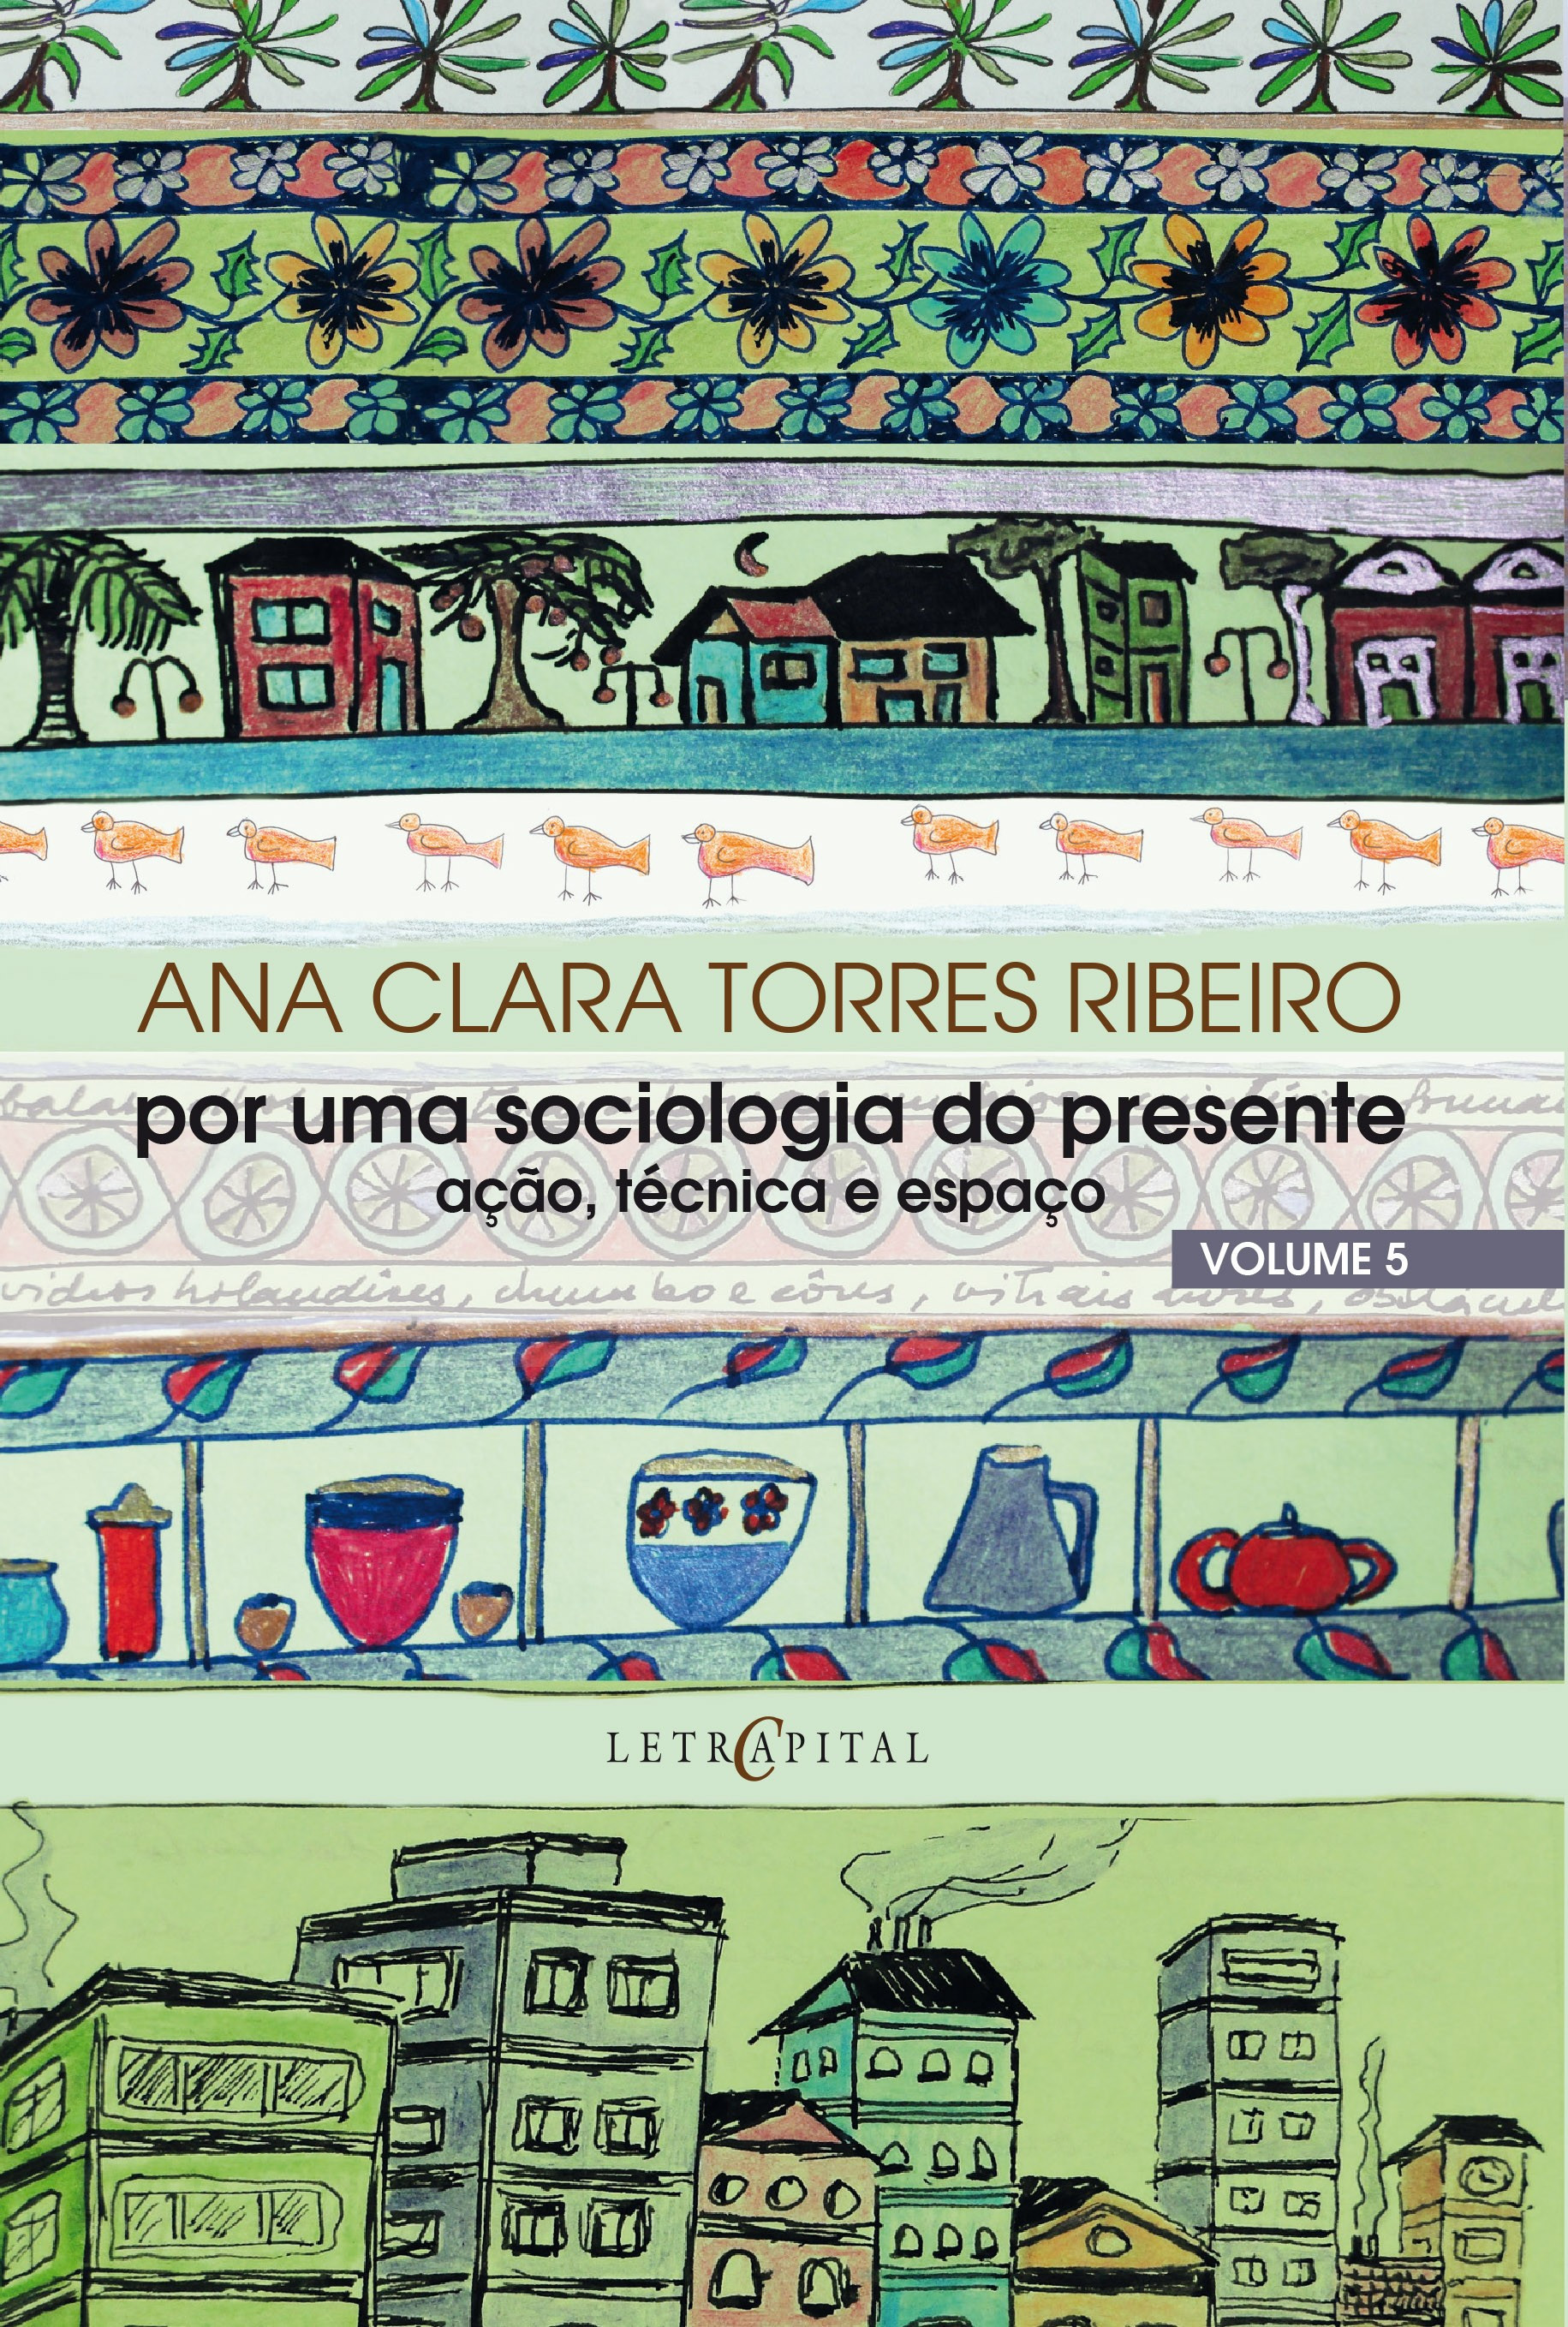 Por uma sociologia do presente - Vol. 5